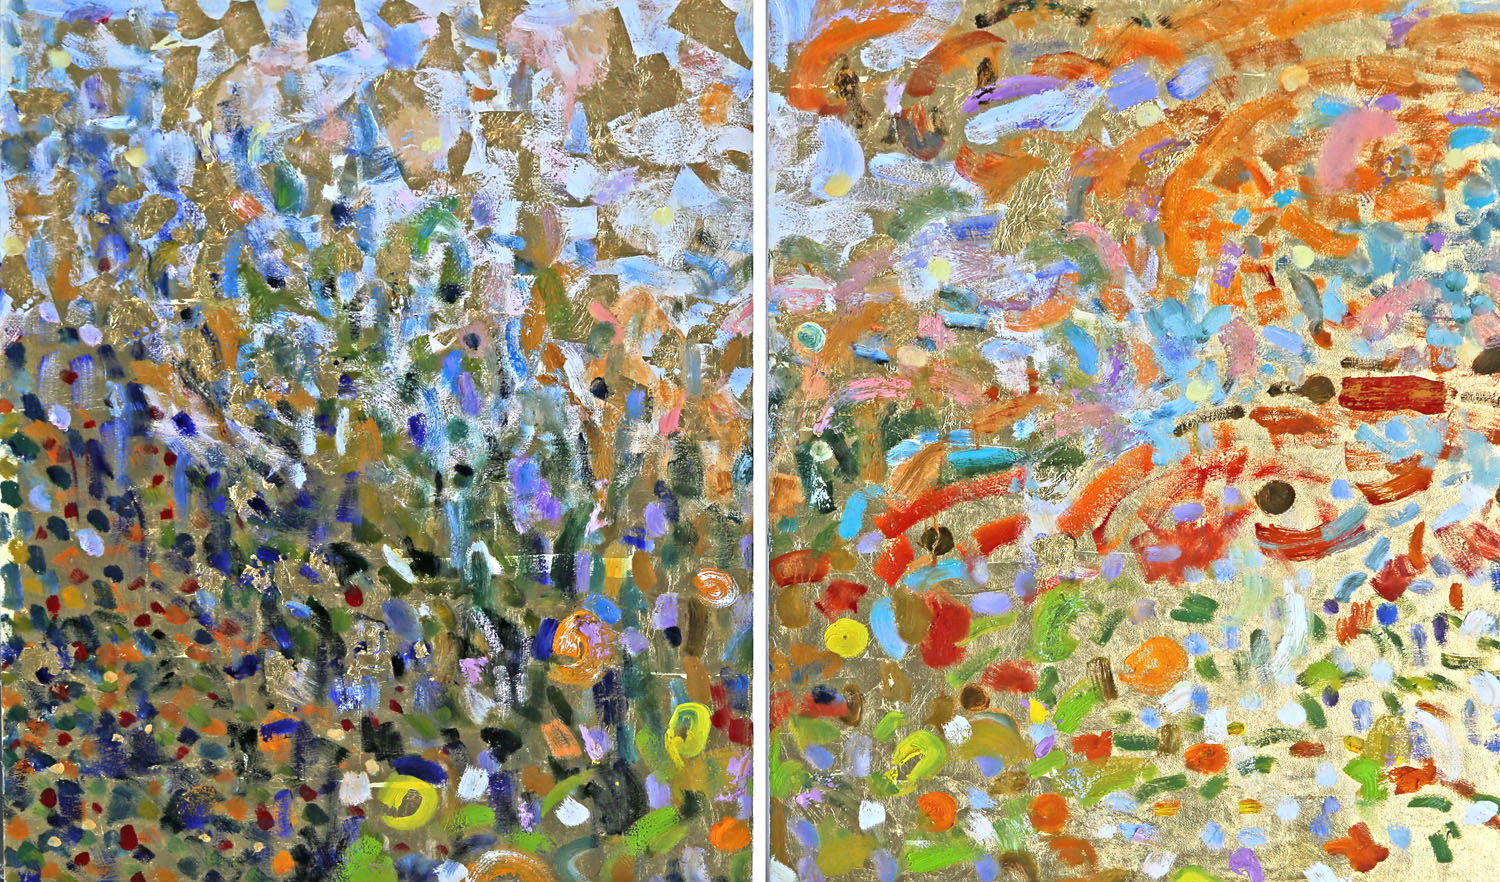 Prana*#40 x 60 in. total, diptych